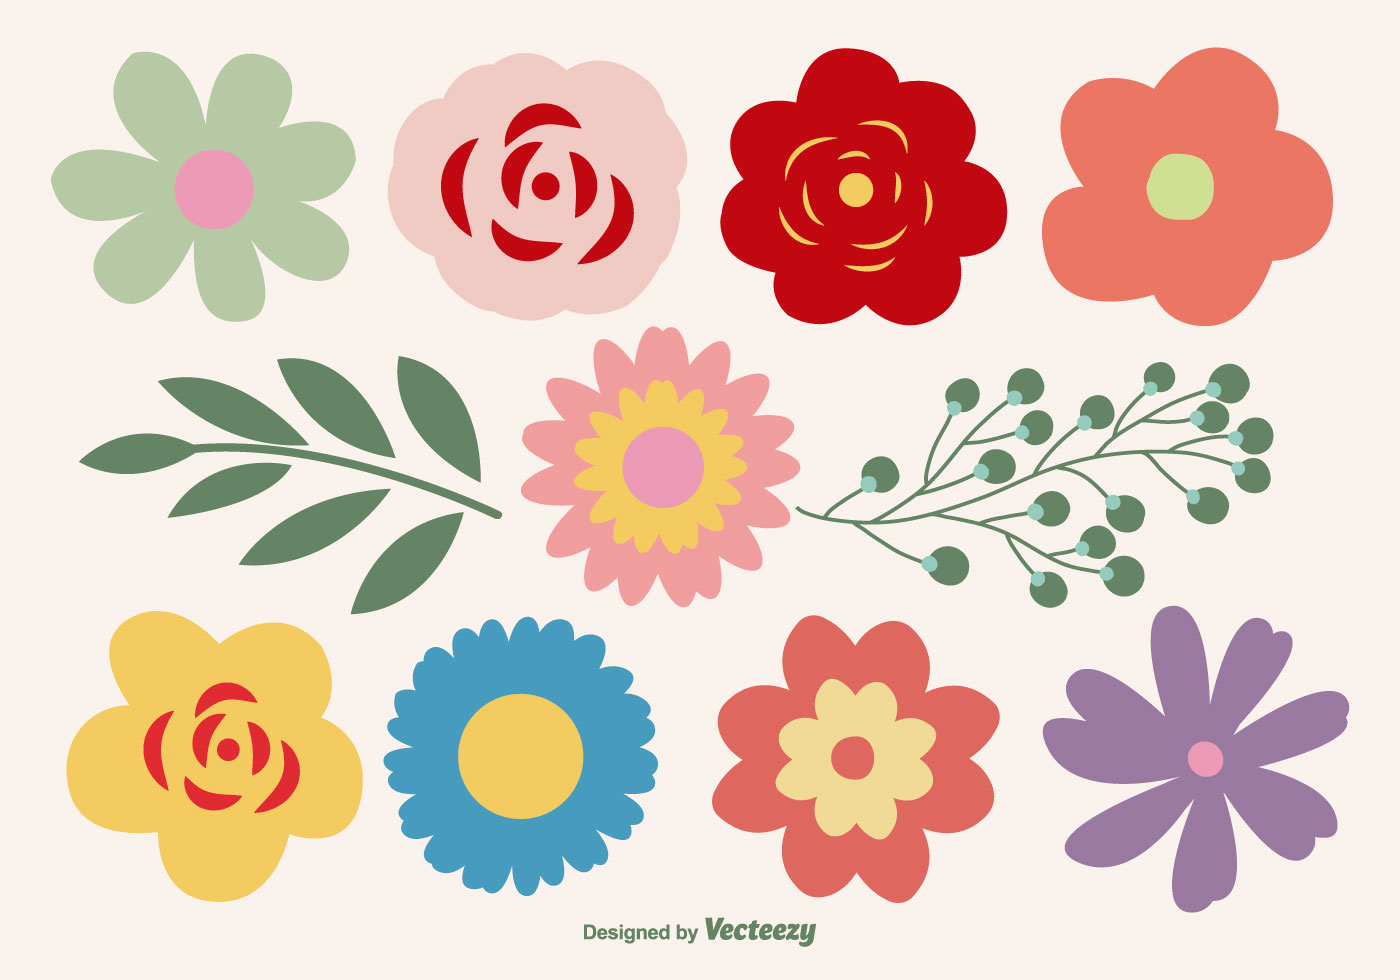 Cute Flower Shapes Set - Download Free Vector Art, Stock Graphics ...